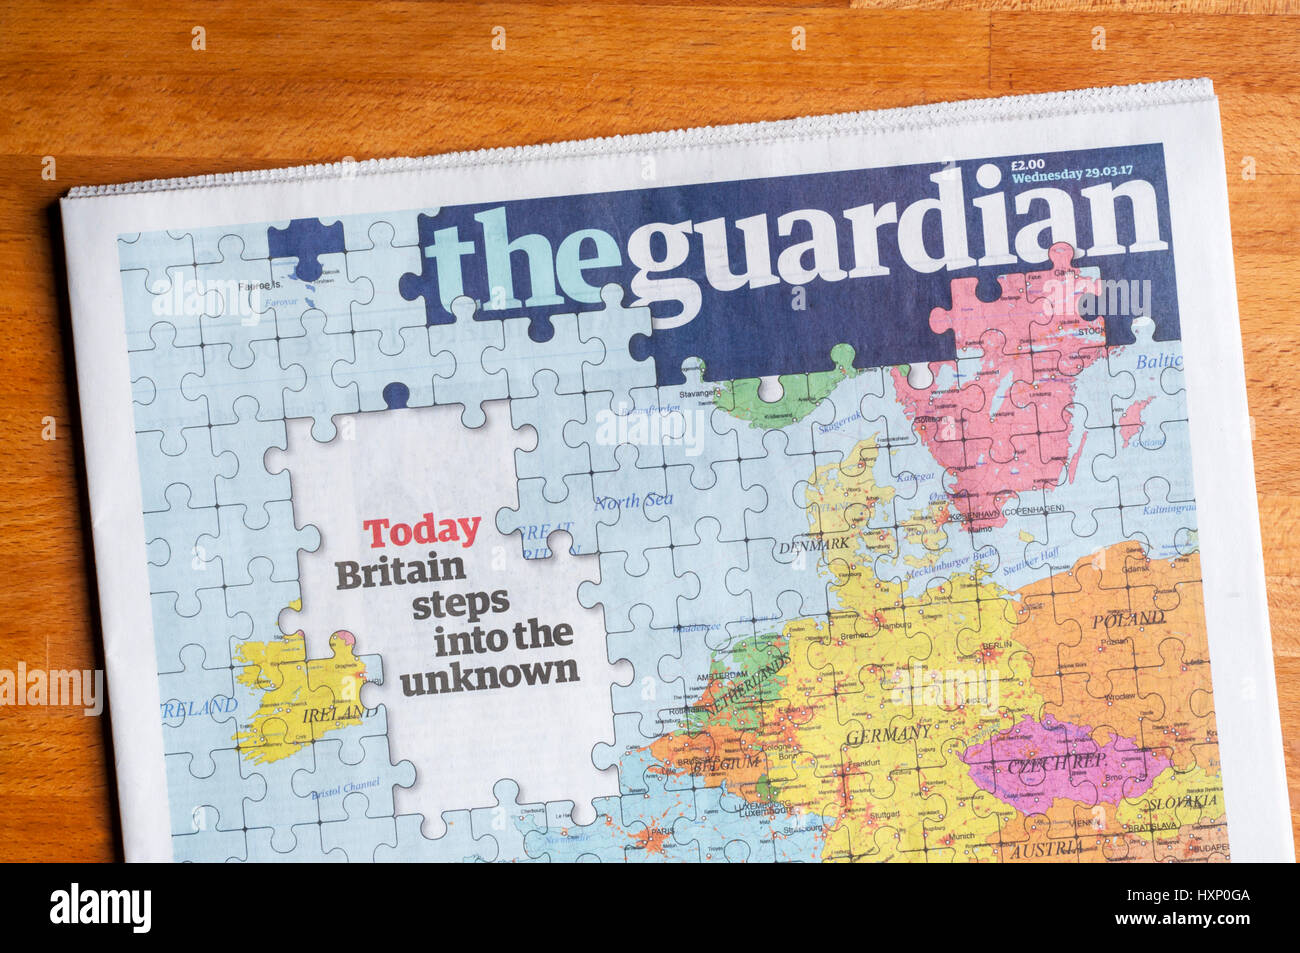 The front page of The Guardian newspaper on the day that the UK triggers Article 50 to begin the process of leaving - Stock Image